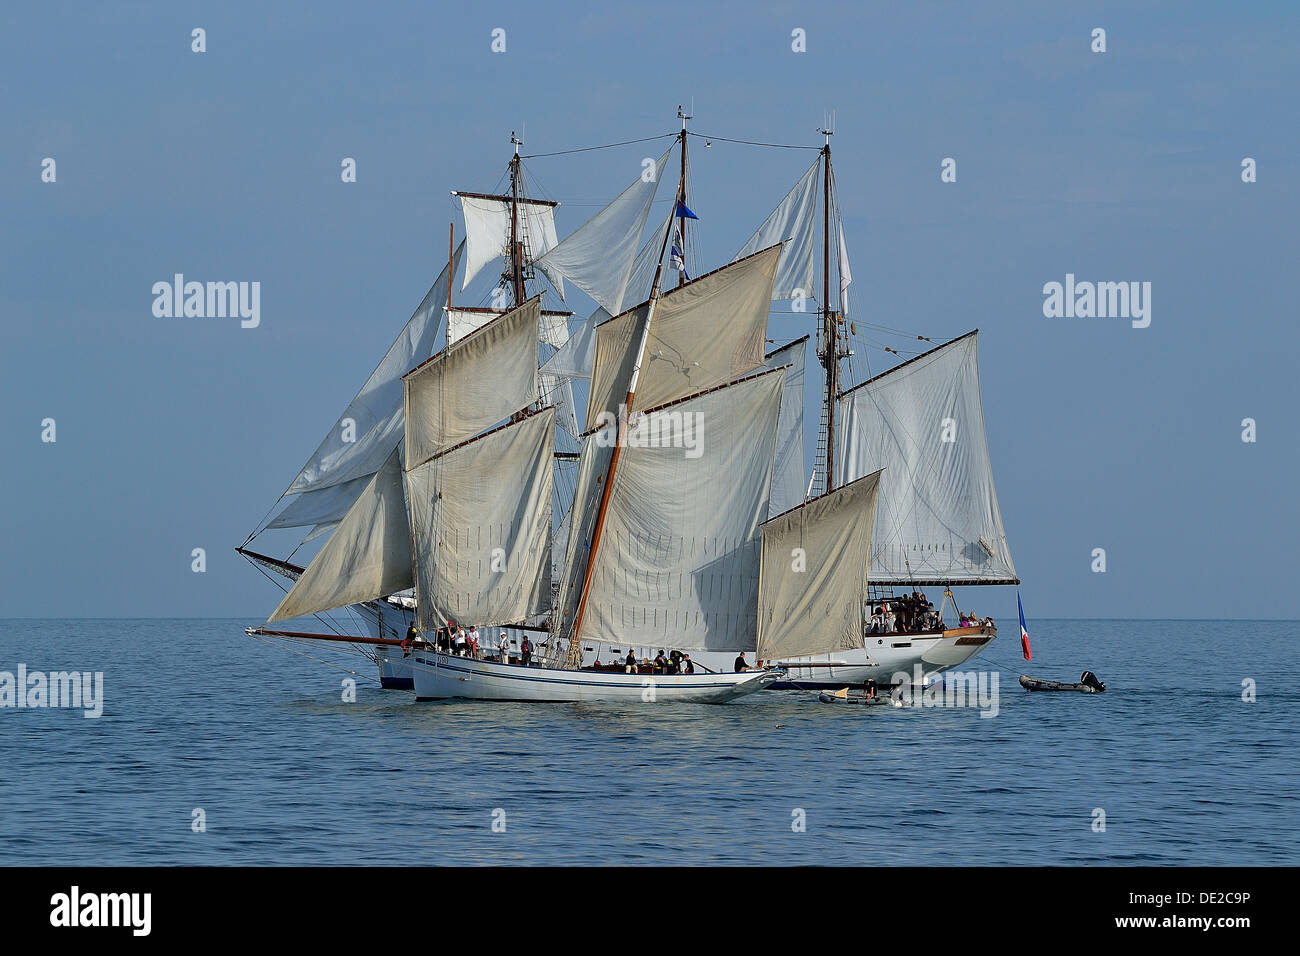 Granvillaise (Bisquine, old fishing boat, homeport : Granville) and Marité (three-masted schooner, 1921, homeport : Granville). Stock Photo